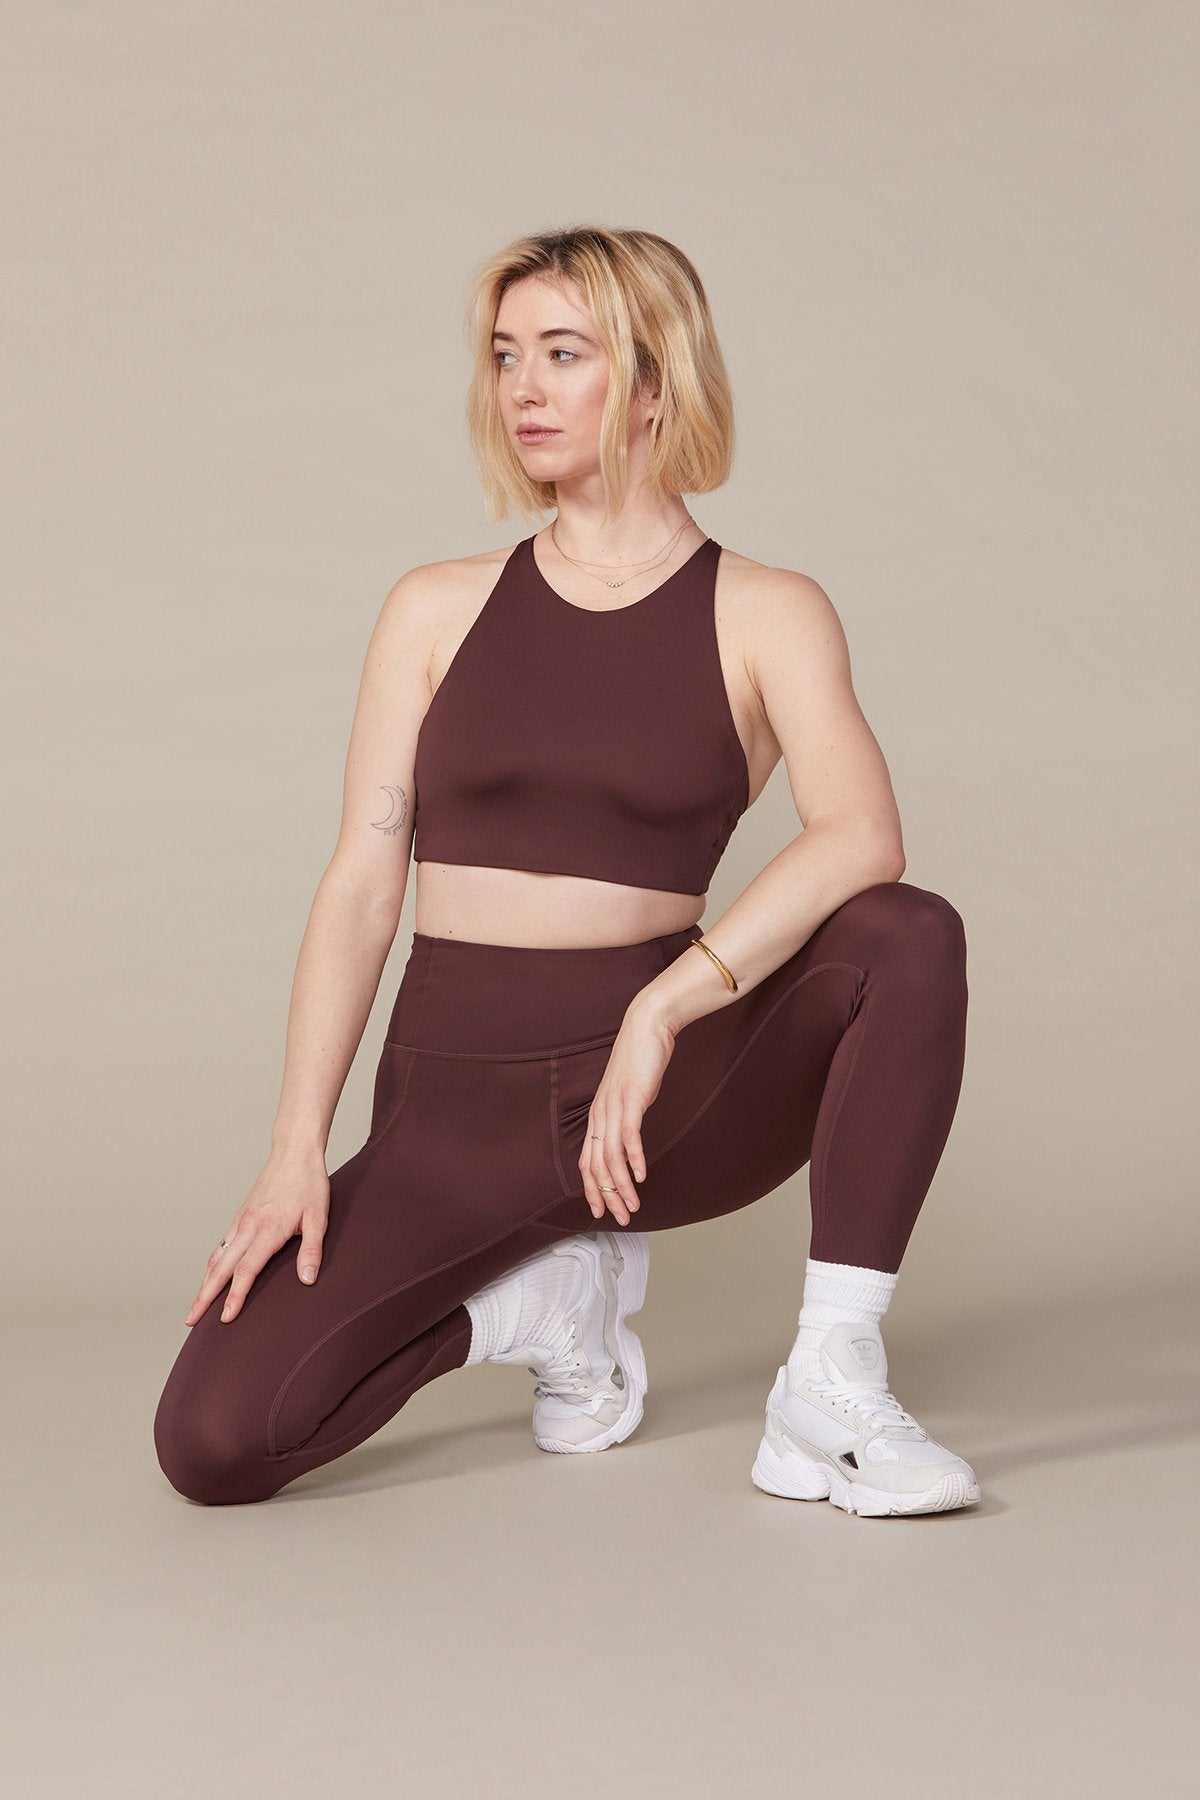 Cocoa High Rise Compressive Leggings - Cropped